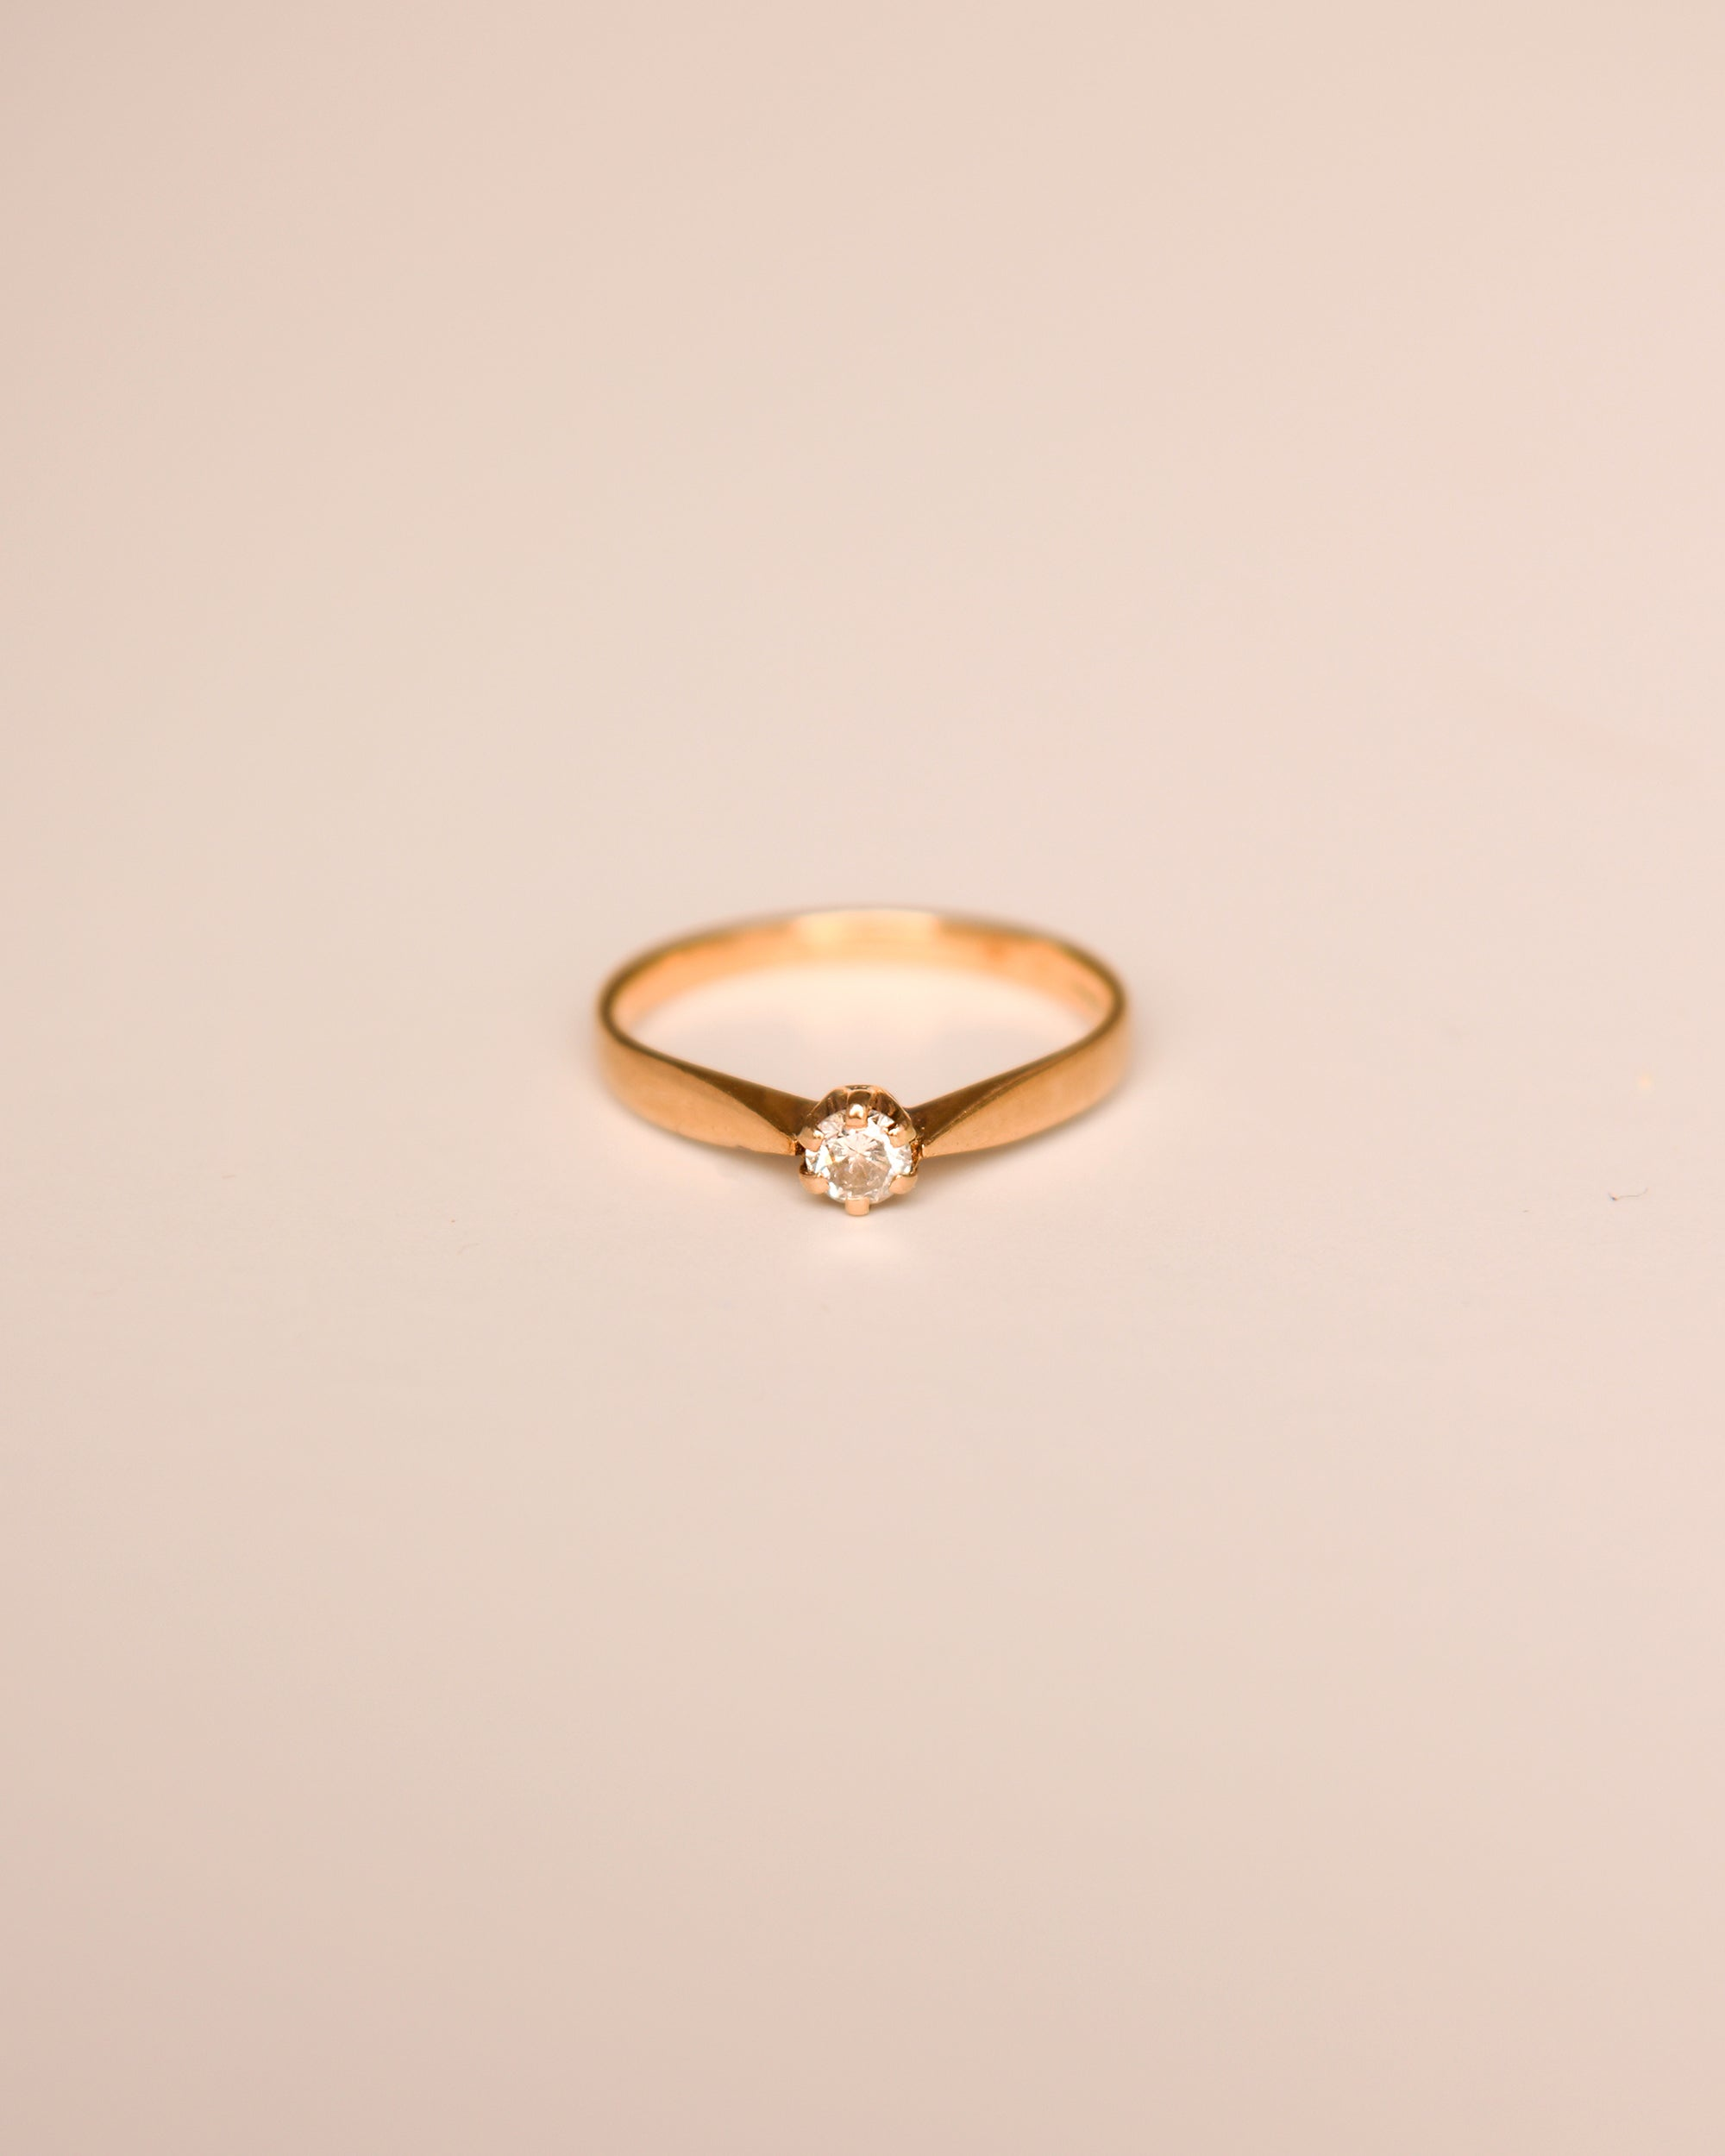 Alice 9ct Gold Vintage Solitaire Diamond Ring